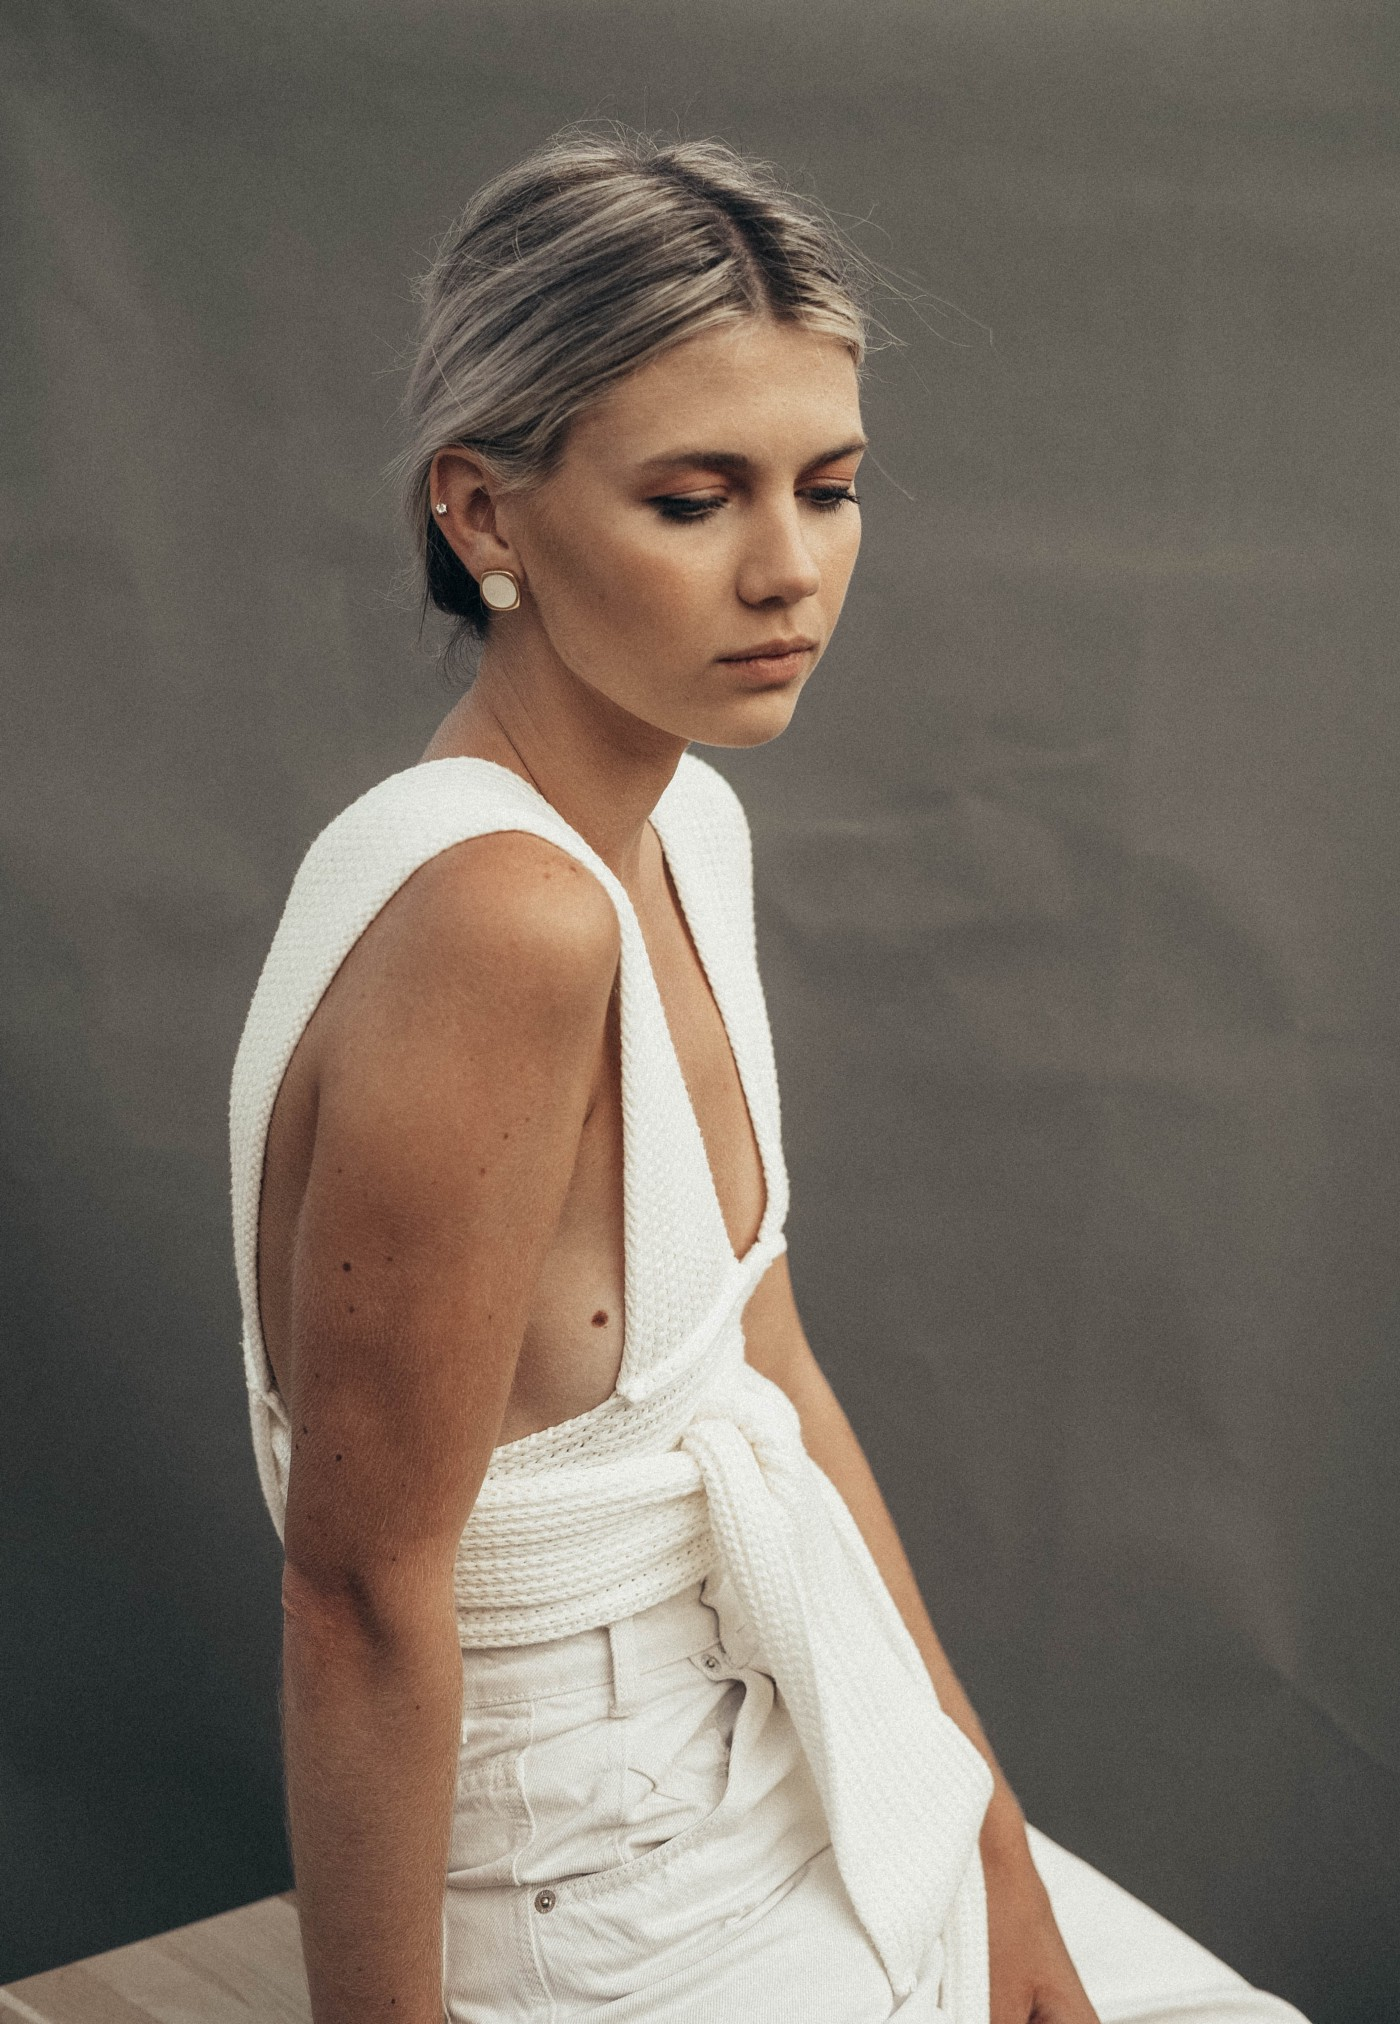 Young blonde woman in white dress looking sad.